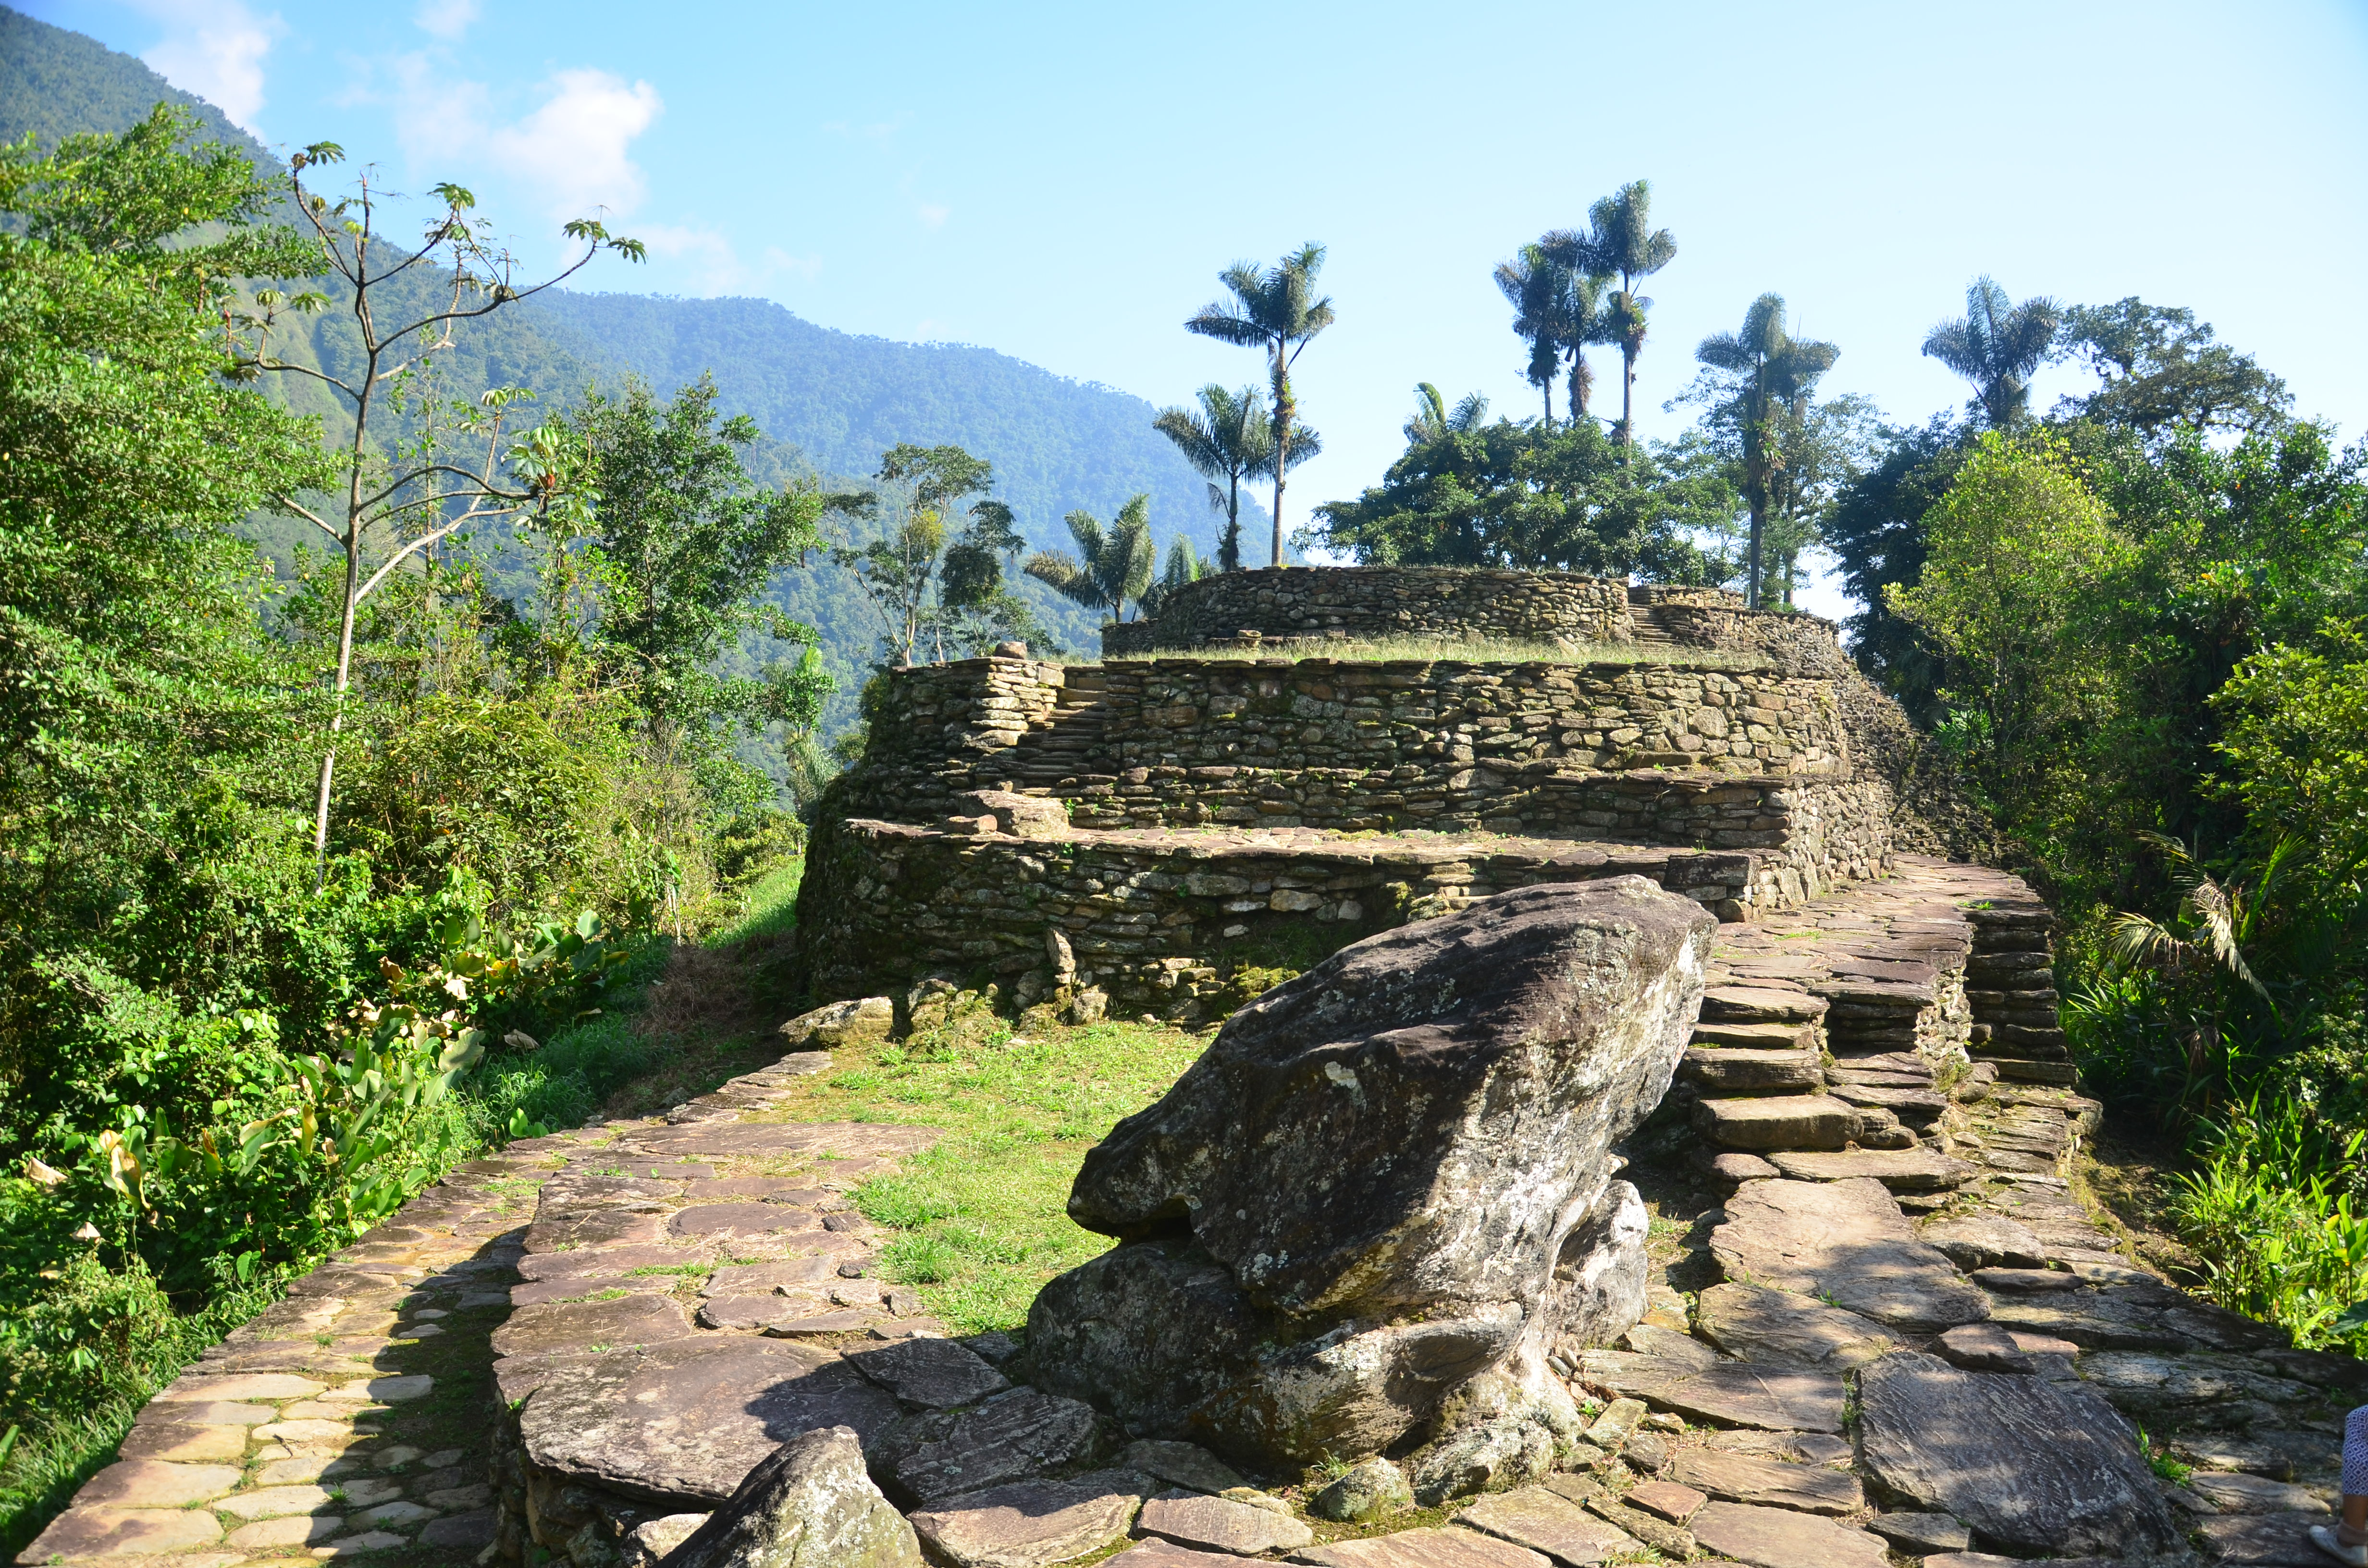 teyhuna lost city colombia best places to visit in colombia